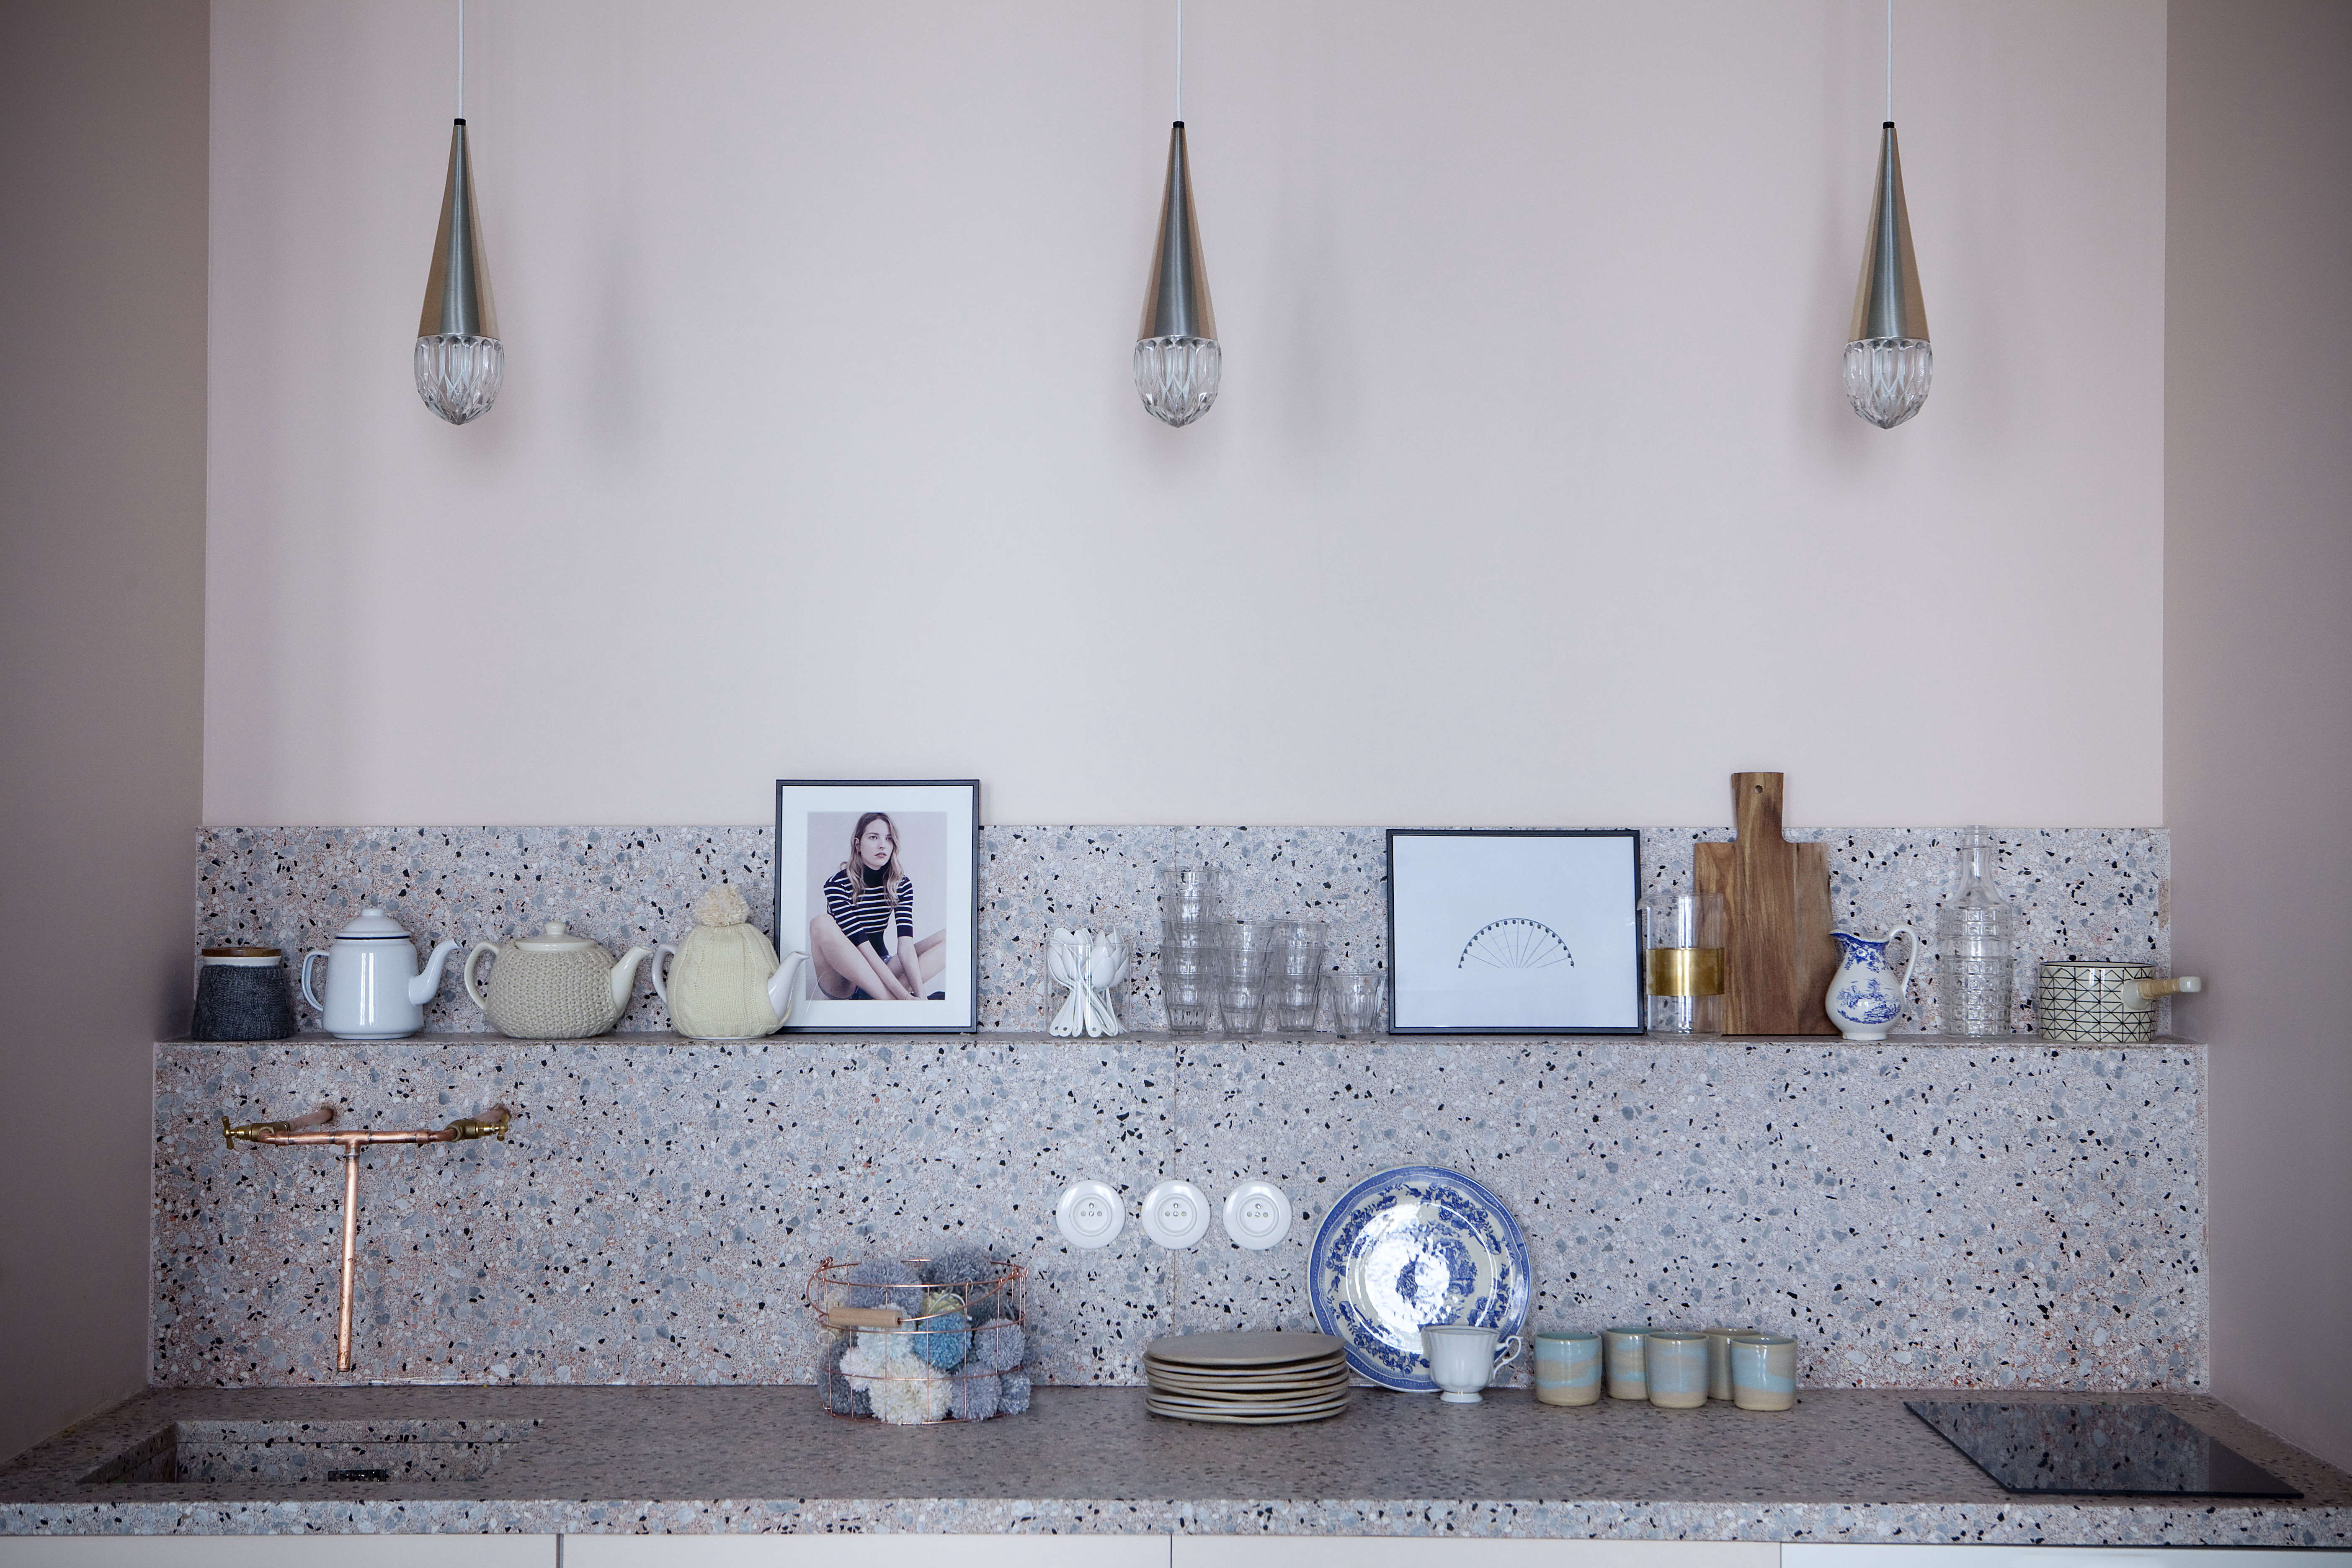 The compact kitchen with terrazzo counters and vintage pendant lights at Chez Marie Sixtine, a guest apartment in Paris, Julie Ansiau photo | Remodelista